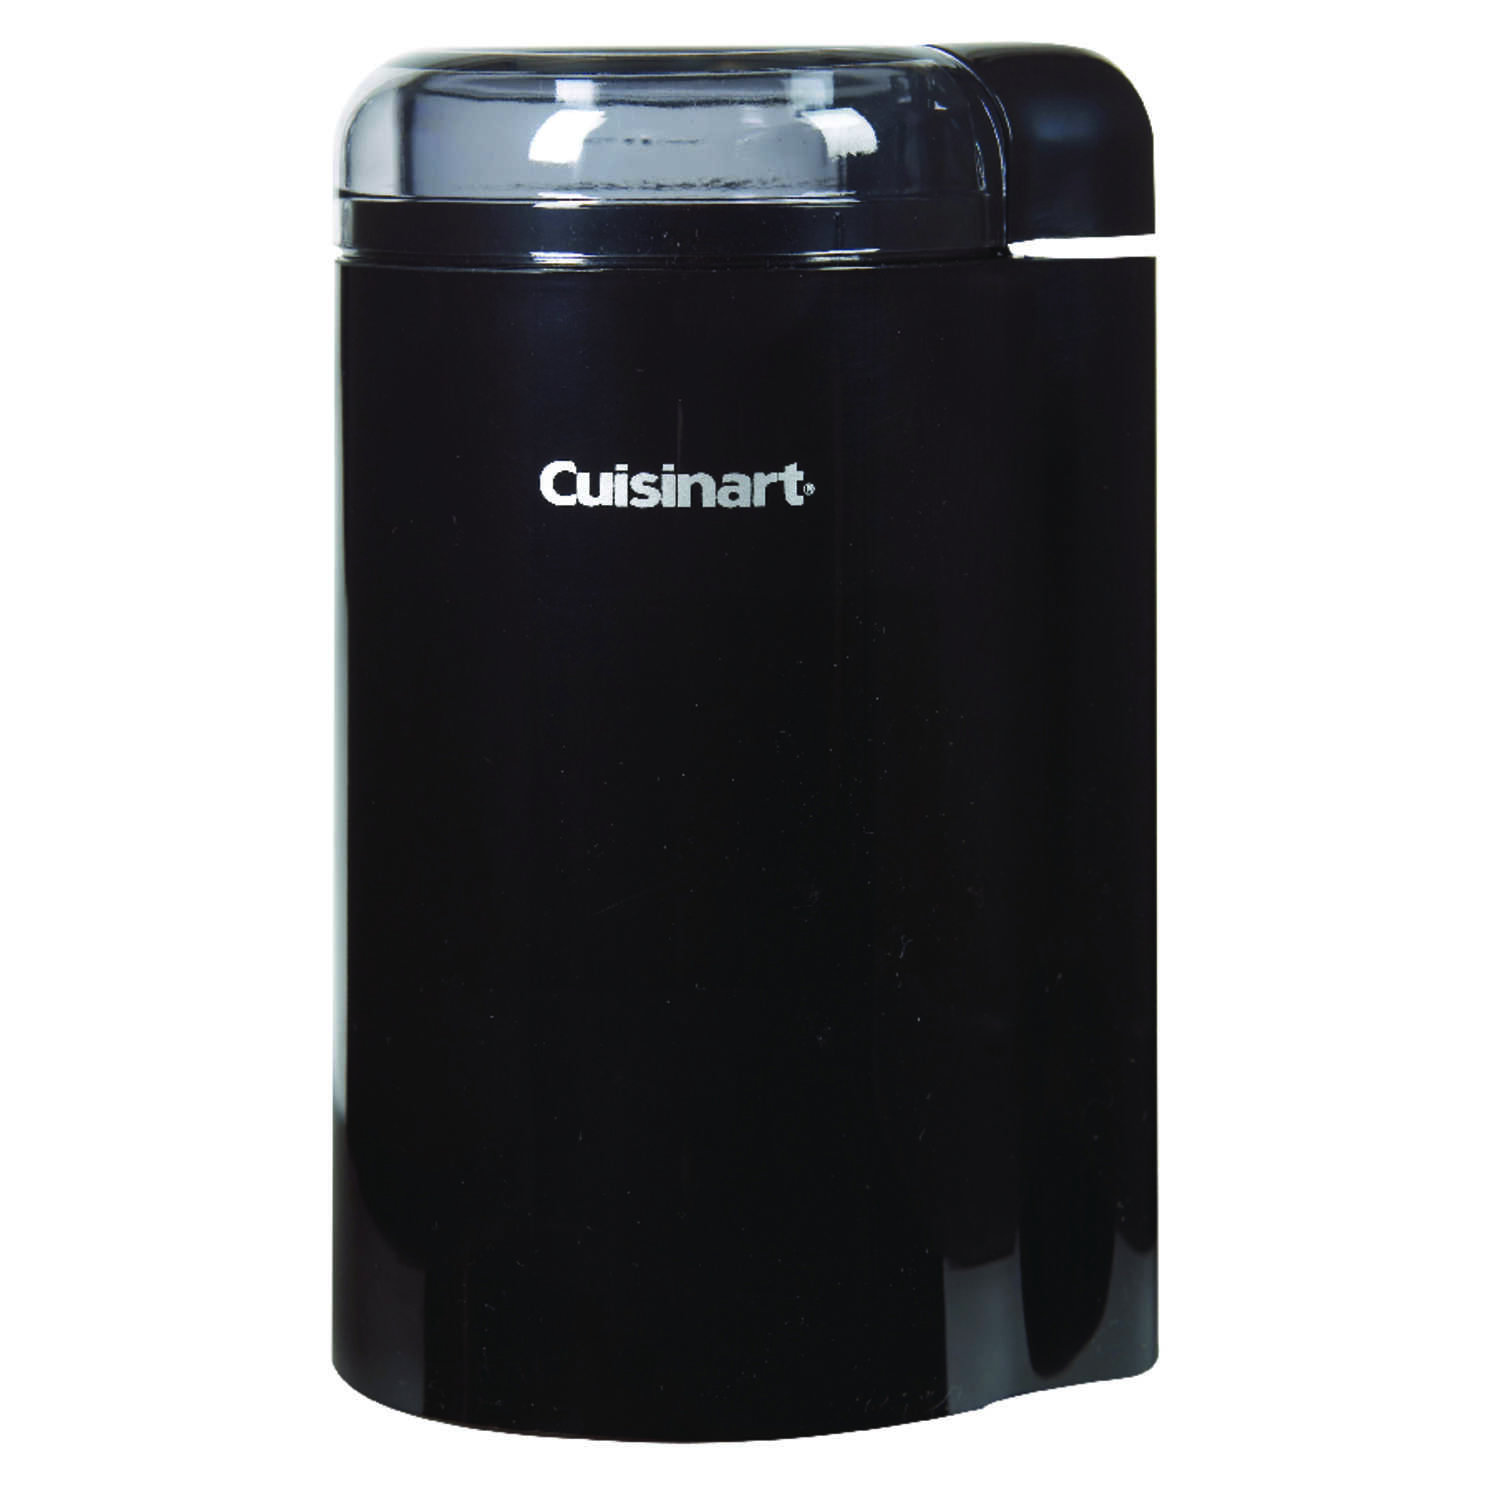 Cuisinart  Black  Stainless Steel  2.5  Coffee Grinder